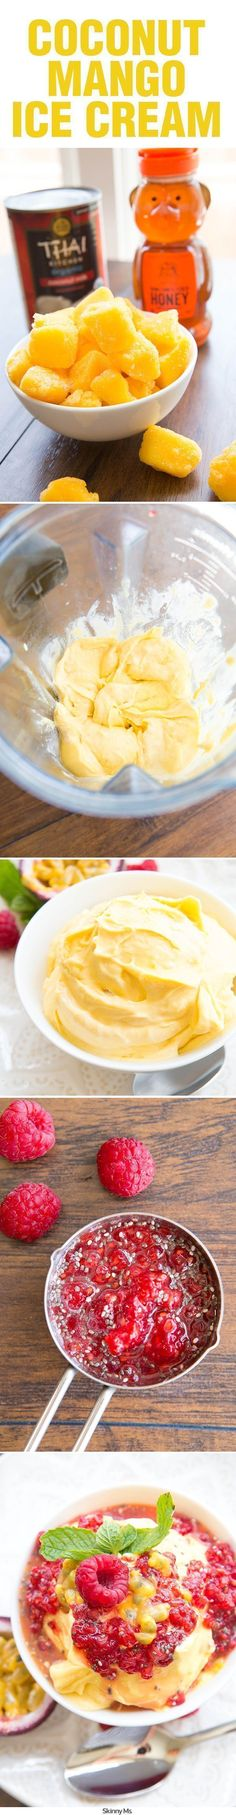 Make your own creamy